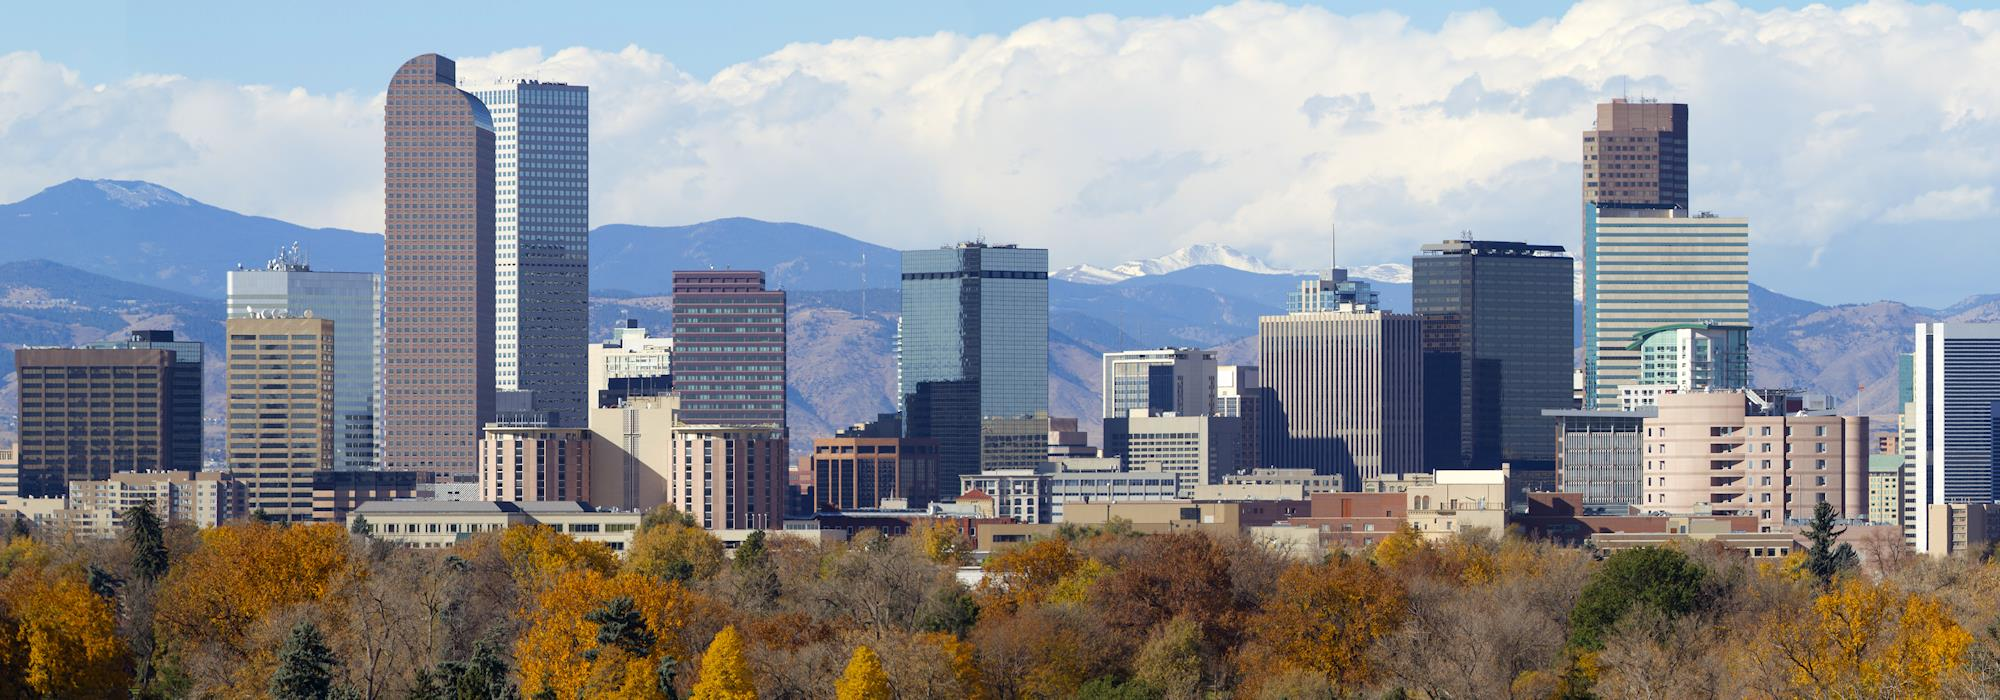 Denver Skyline compressed